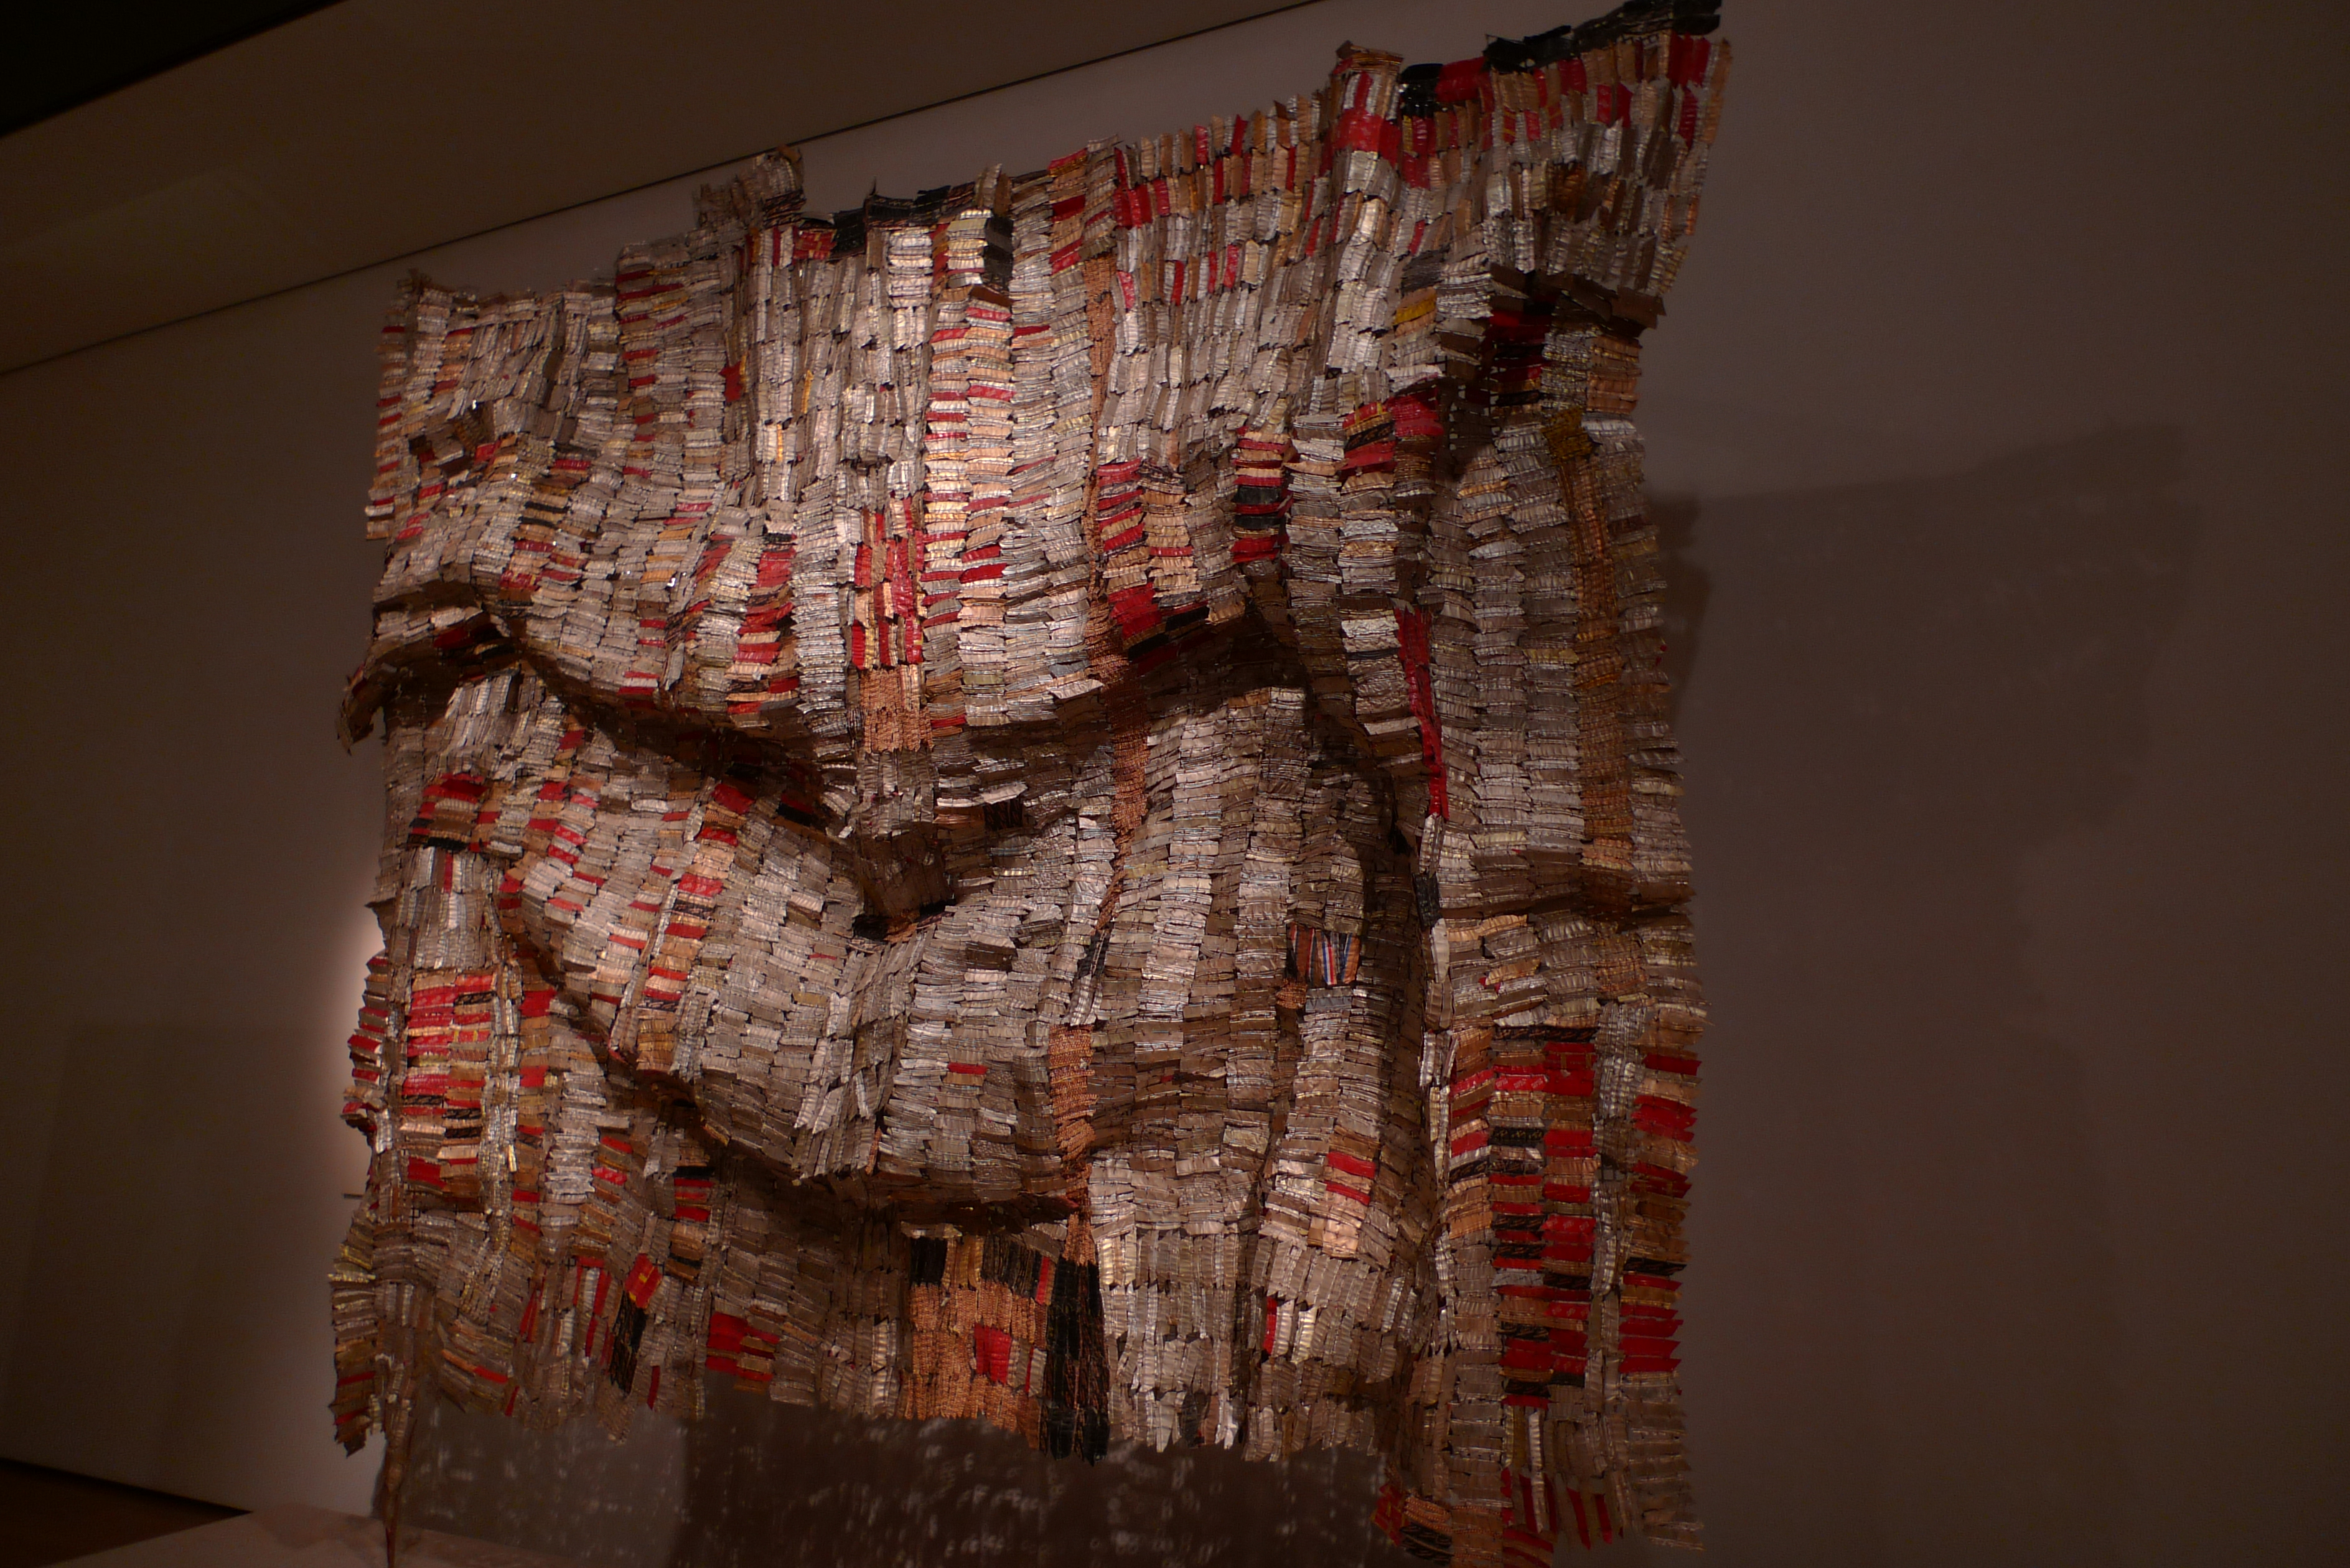 Contemporary African art - Wikiwand